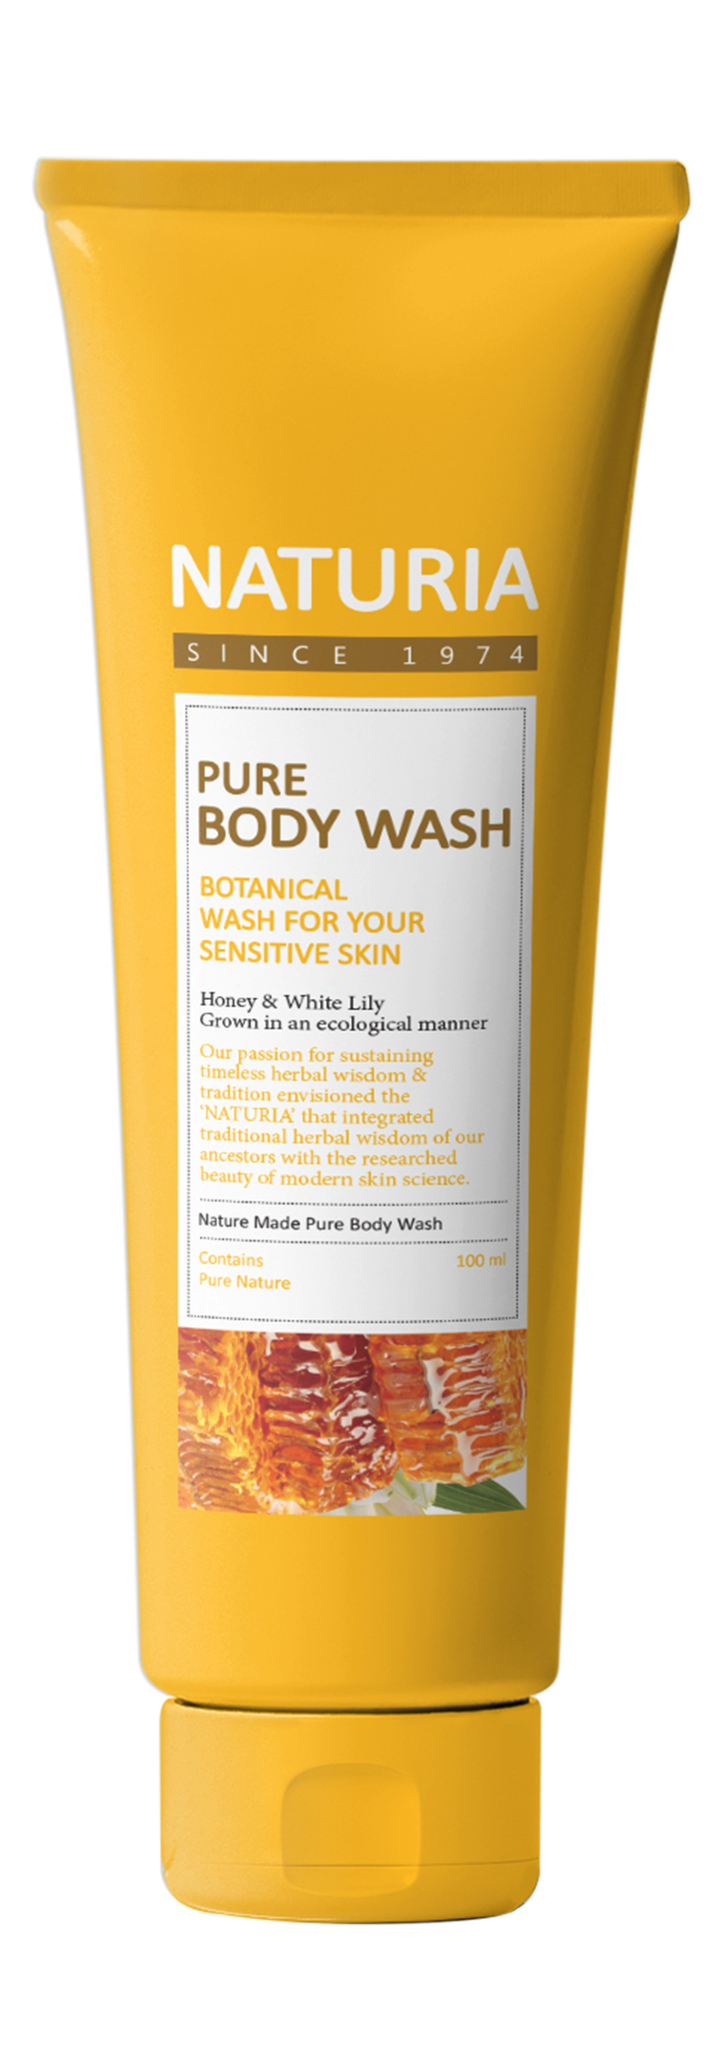 Гели для душа Гель для душа Мед и Лилия, NATURIA,  Pure Body Wash (Honey & White Lily),  100 мл 004952.jpg